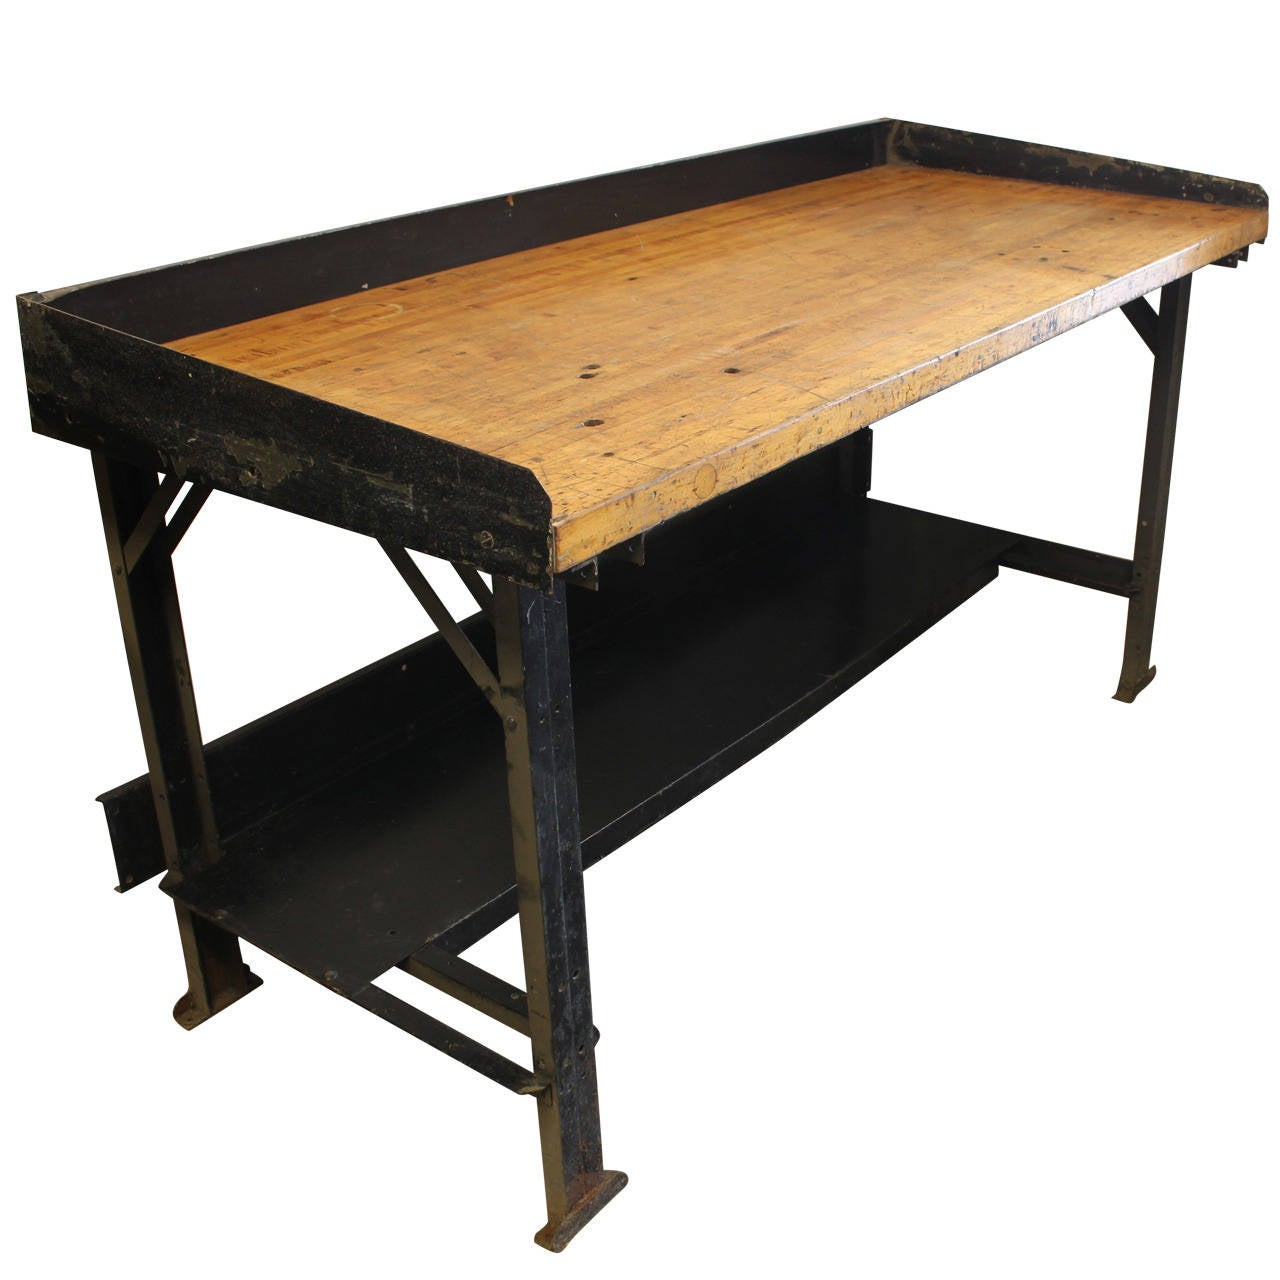 vintage industrial work table at 1stdibs. Black Bedroom Furniture Sets. Home Design Ideas